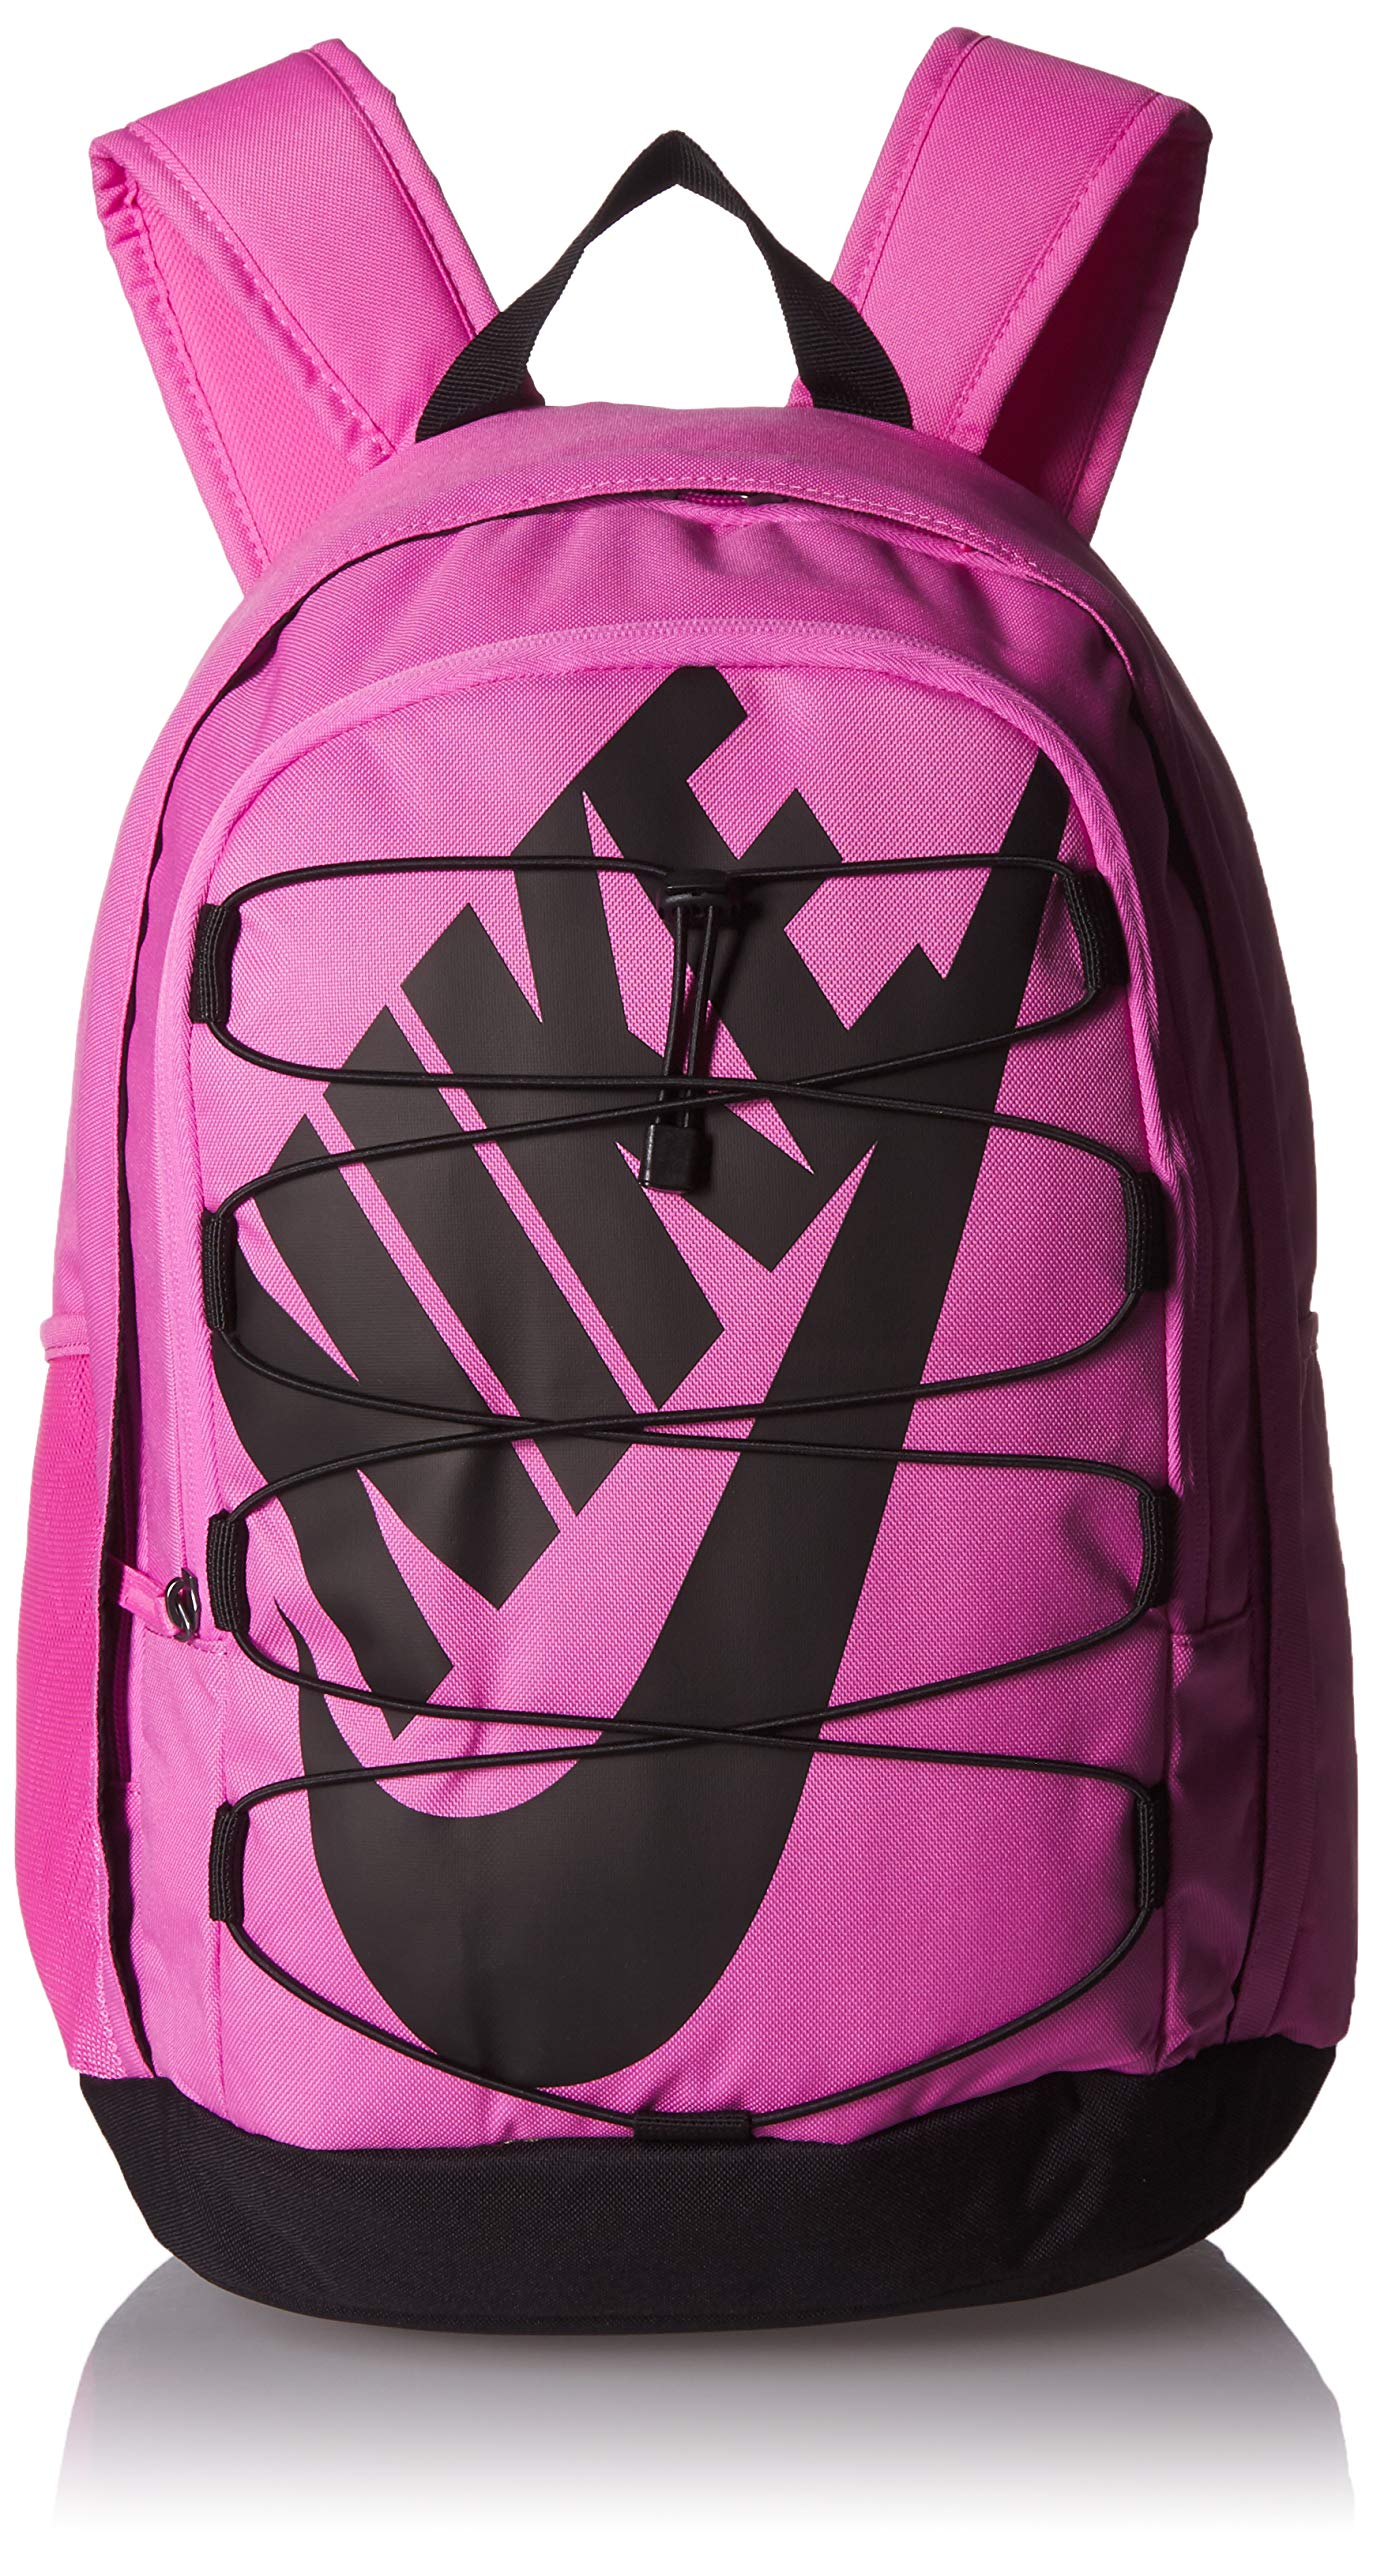 Nike Hayward 2.0 Backpack, Backpack for Women and Men with Polyester Shell & Adjustable Straps, China Rose/Black/Black by Nike